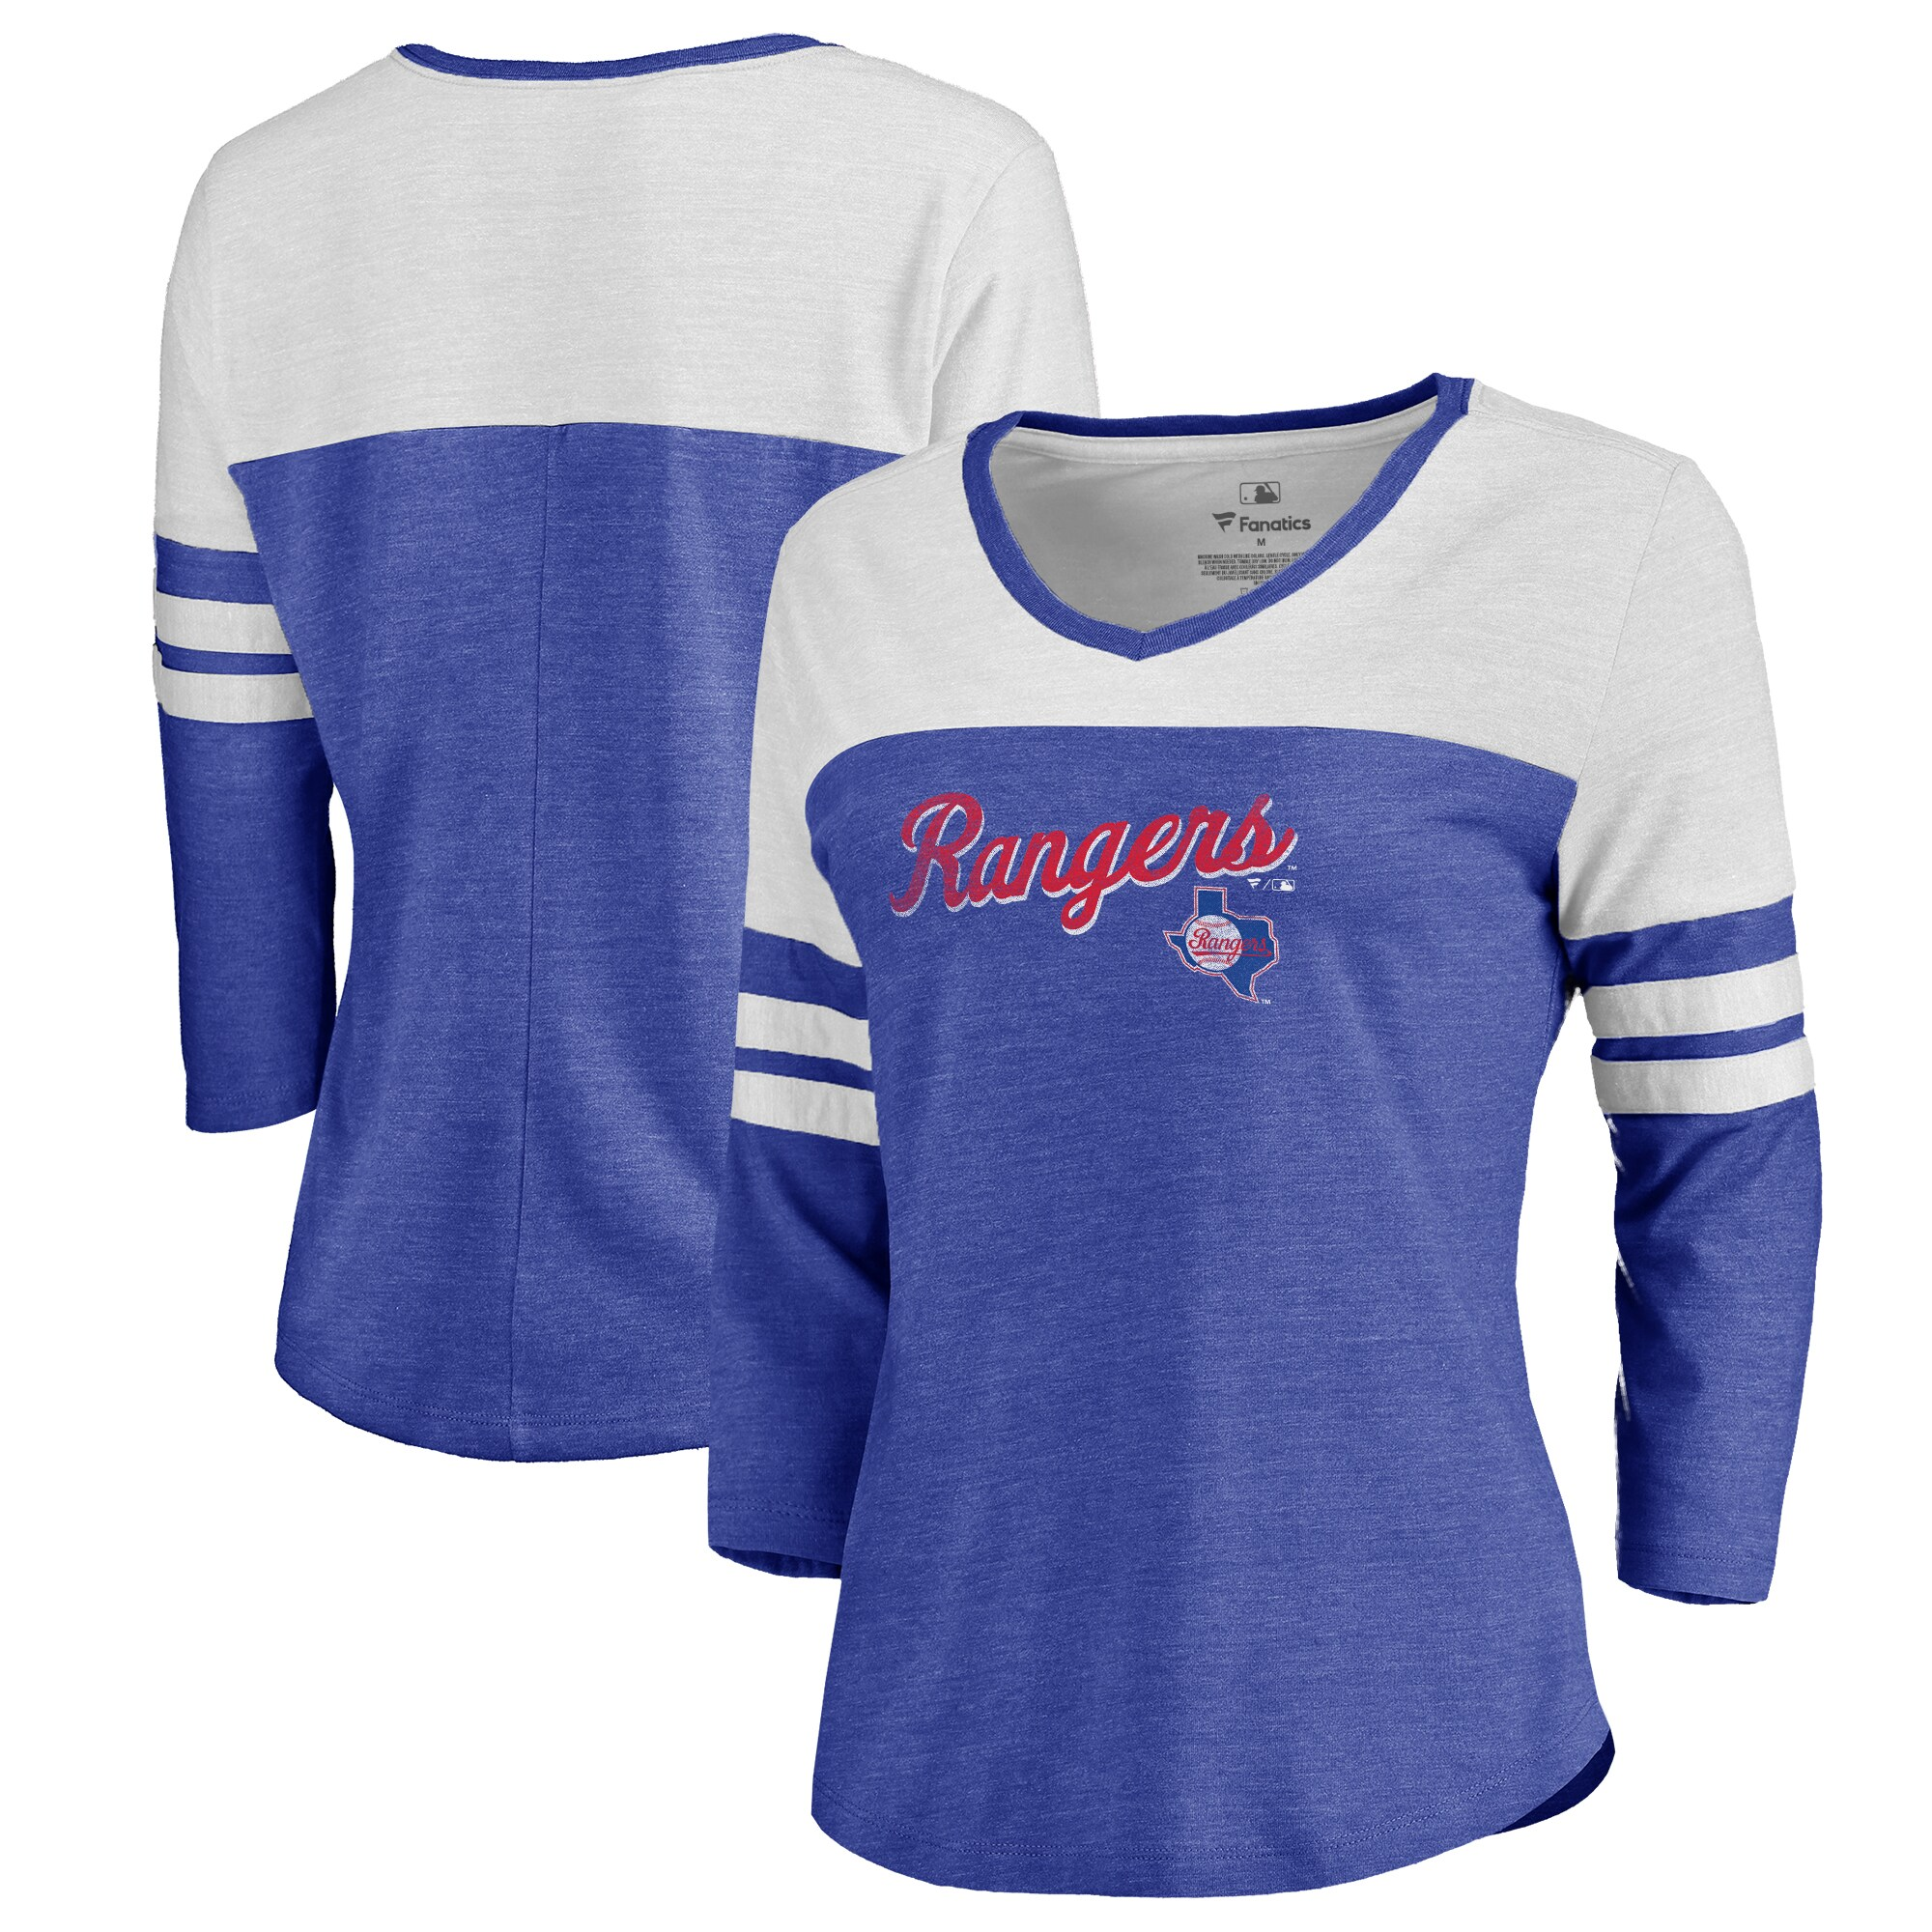 Fanatics Branded Texas Rangers Women's Royal Rising Script Color Block 3/4 Sleeve Tri-Blend T-Shirt